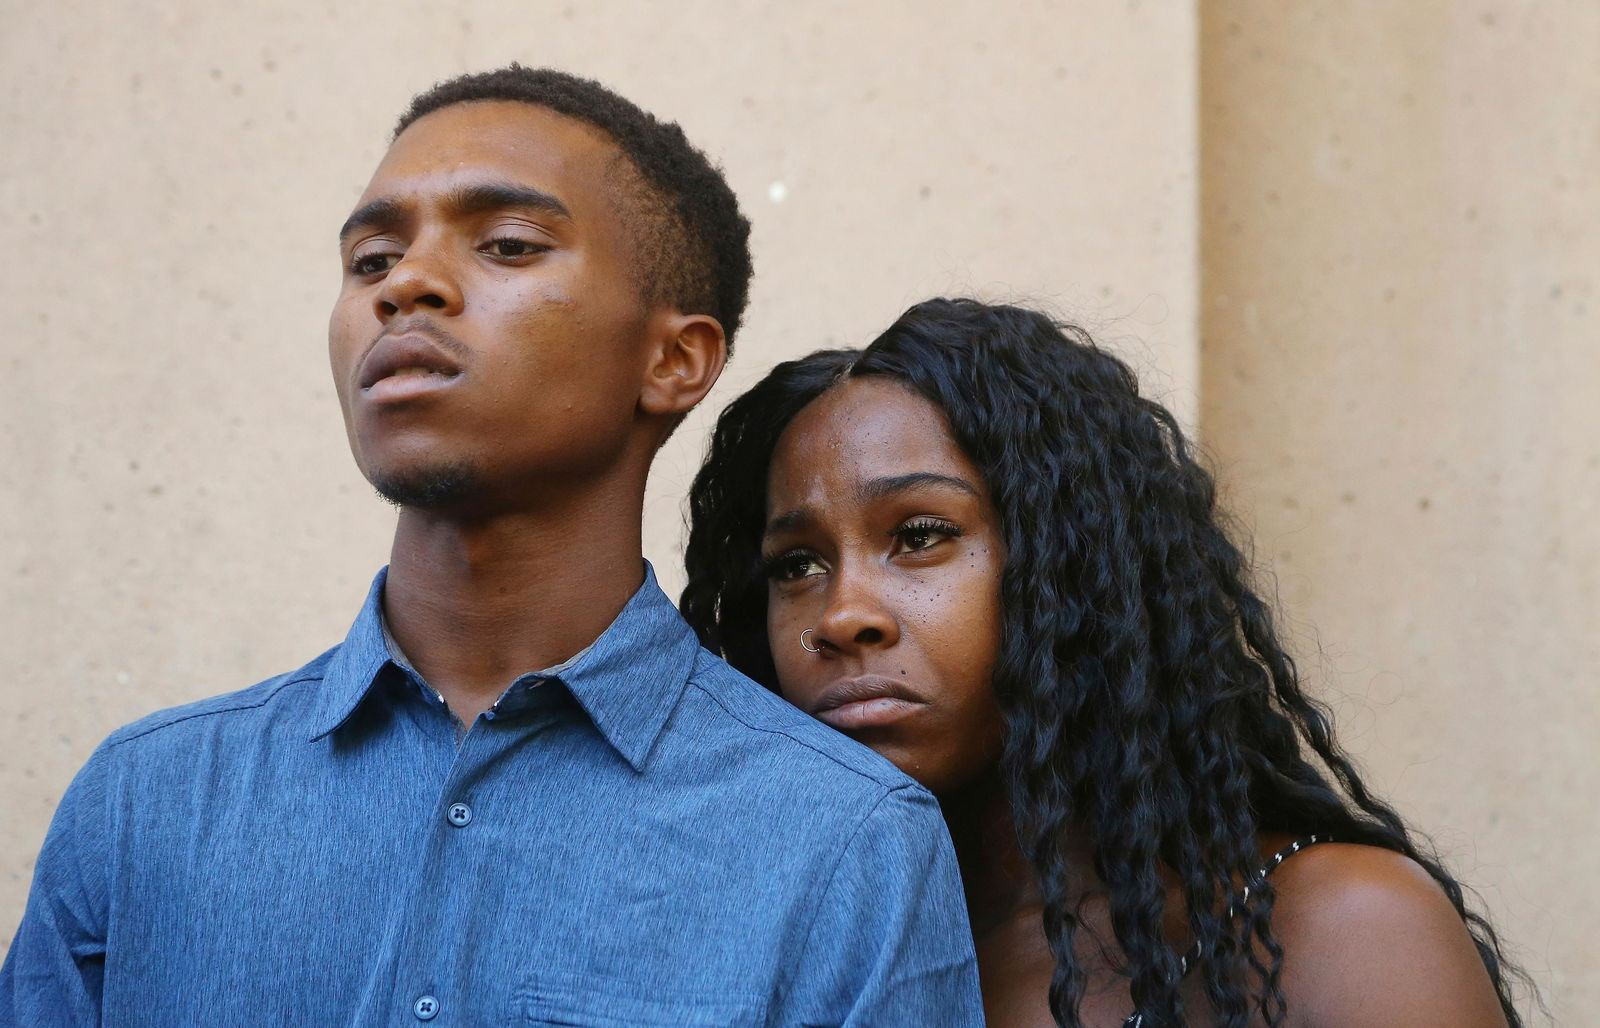 Dravon Ames, left, and Iesha Harper pause as they listen to a question during a news conference at Phoenix City Hall, Monday, June 17, 2019, in Phoenix. (AP Photo/Ross D. Franklin)